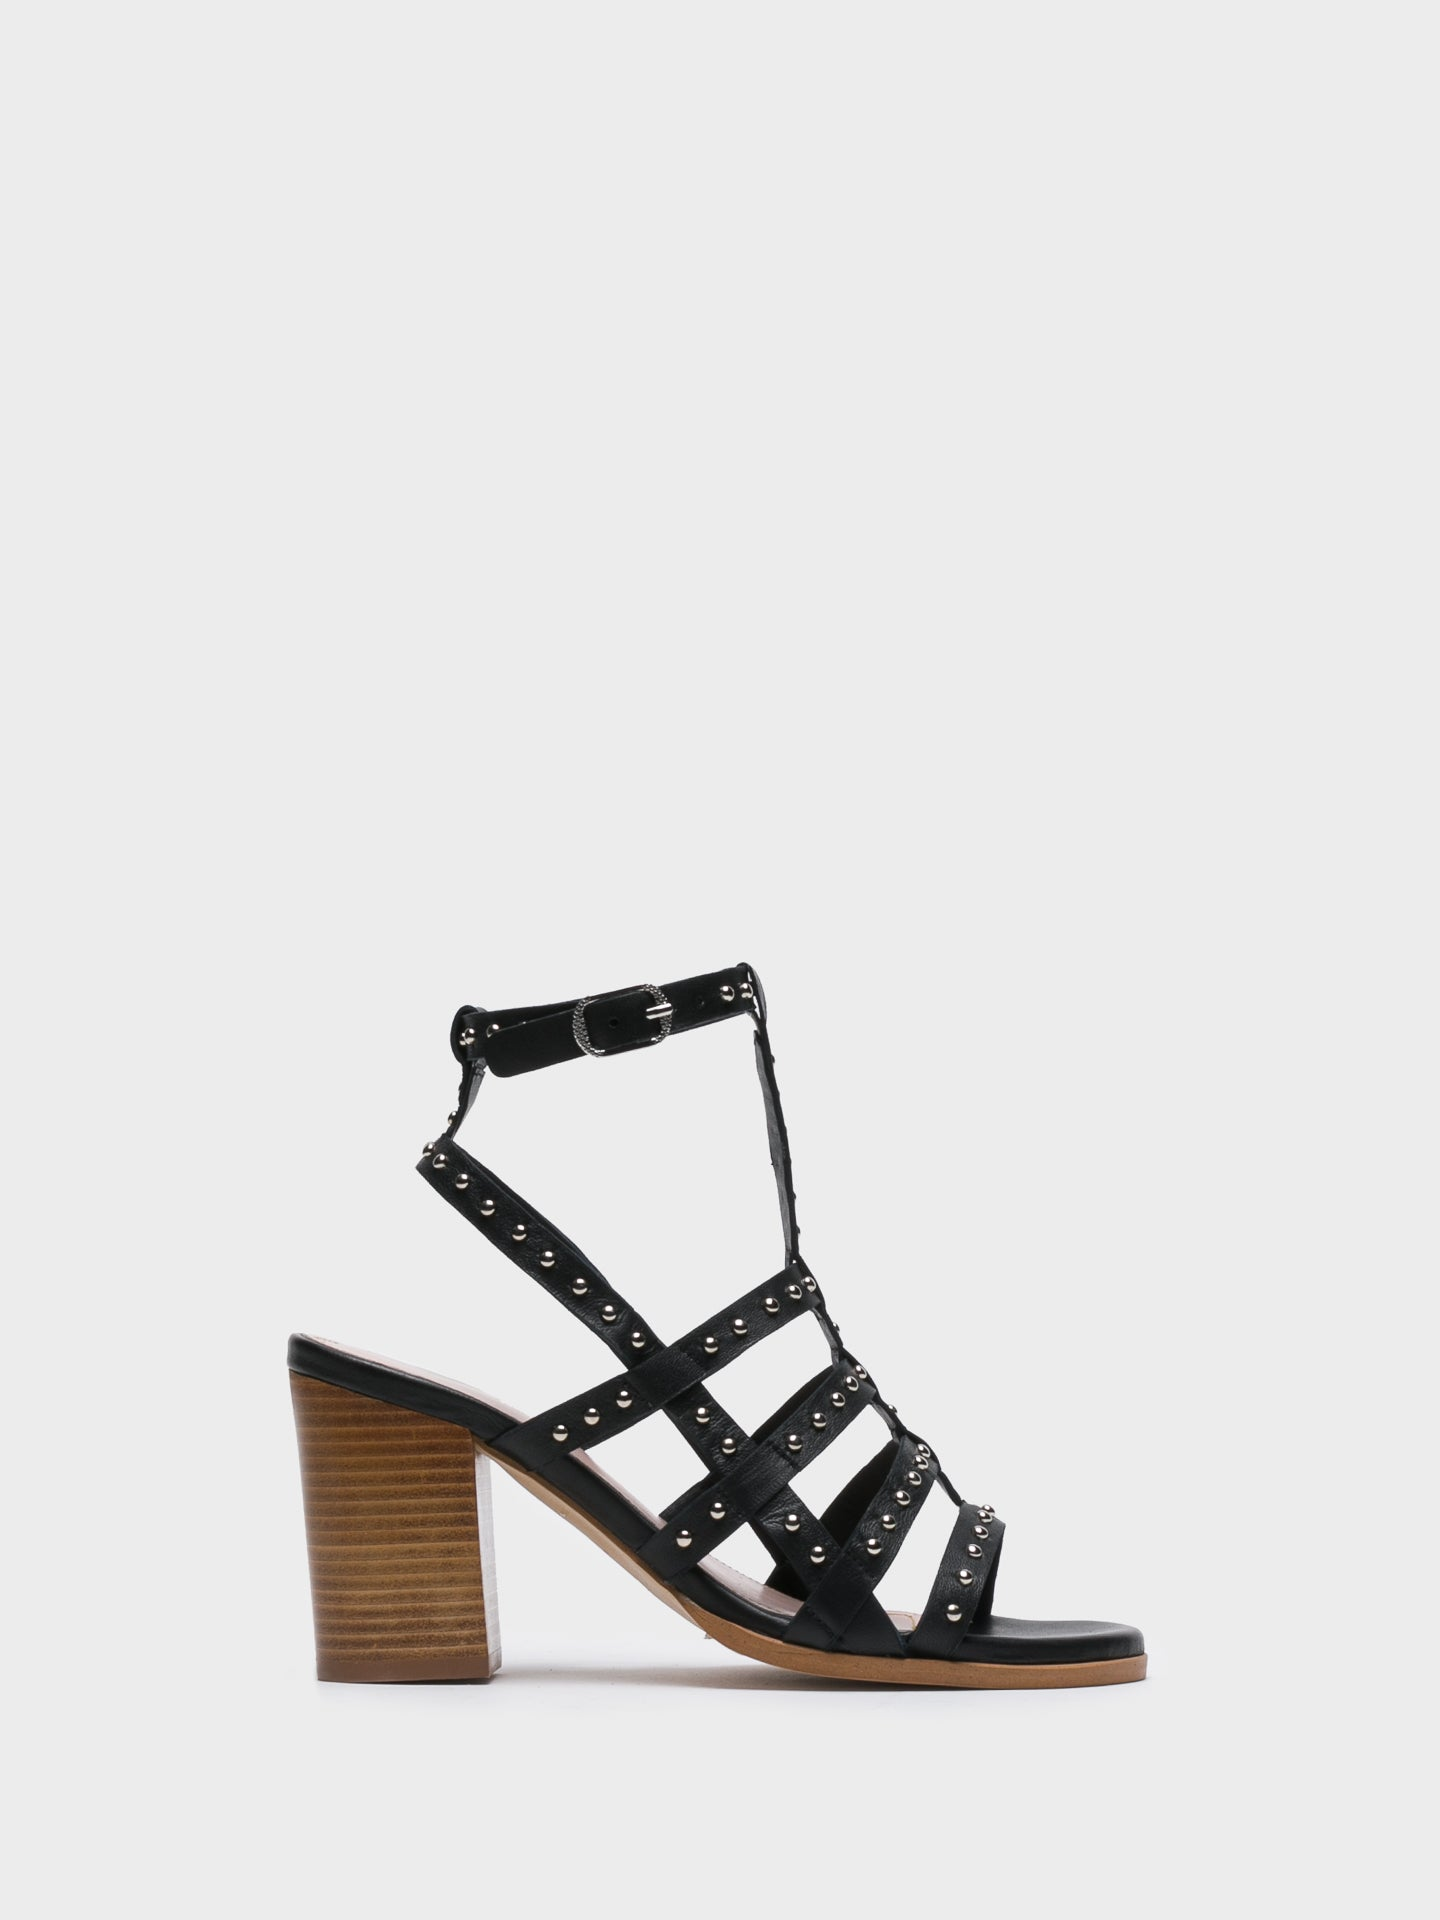 JJ Heitor Black Strappy Sandals